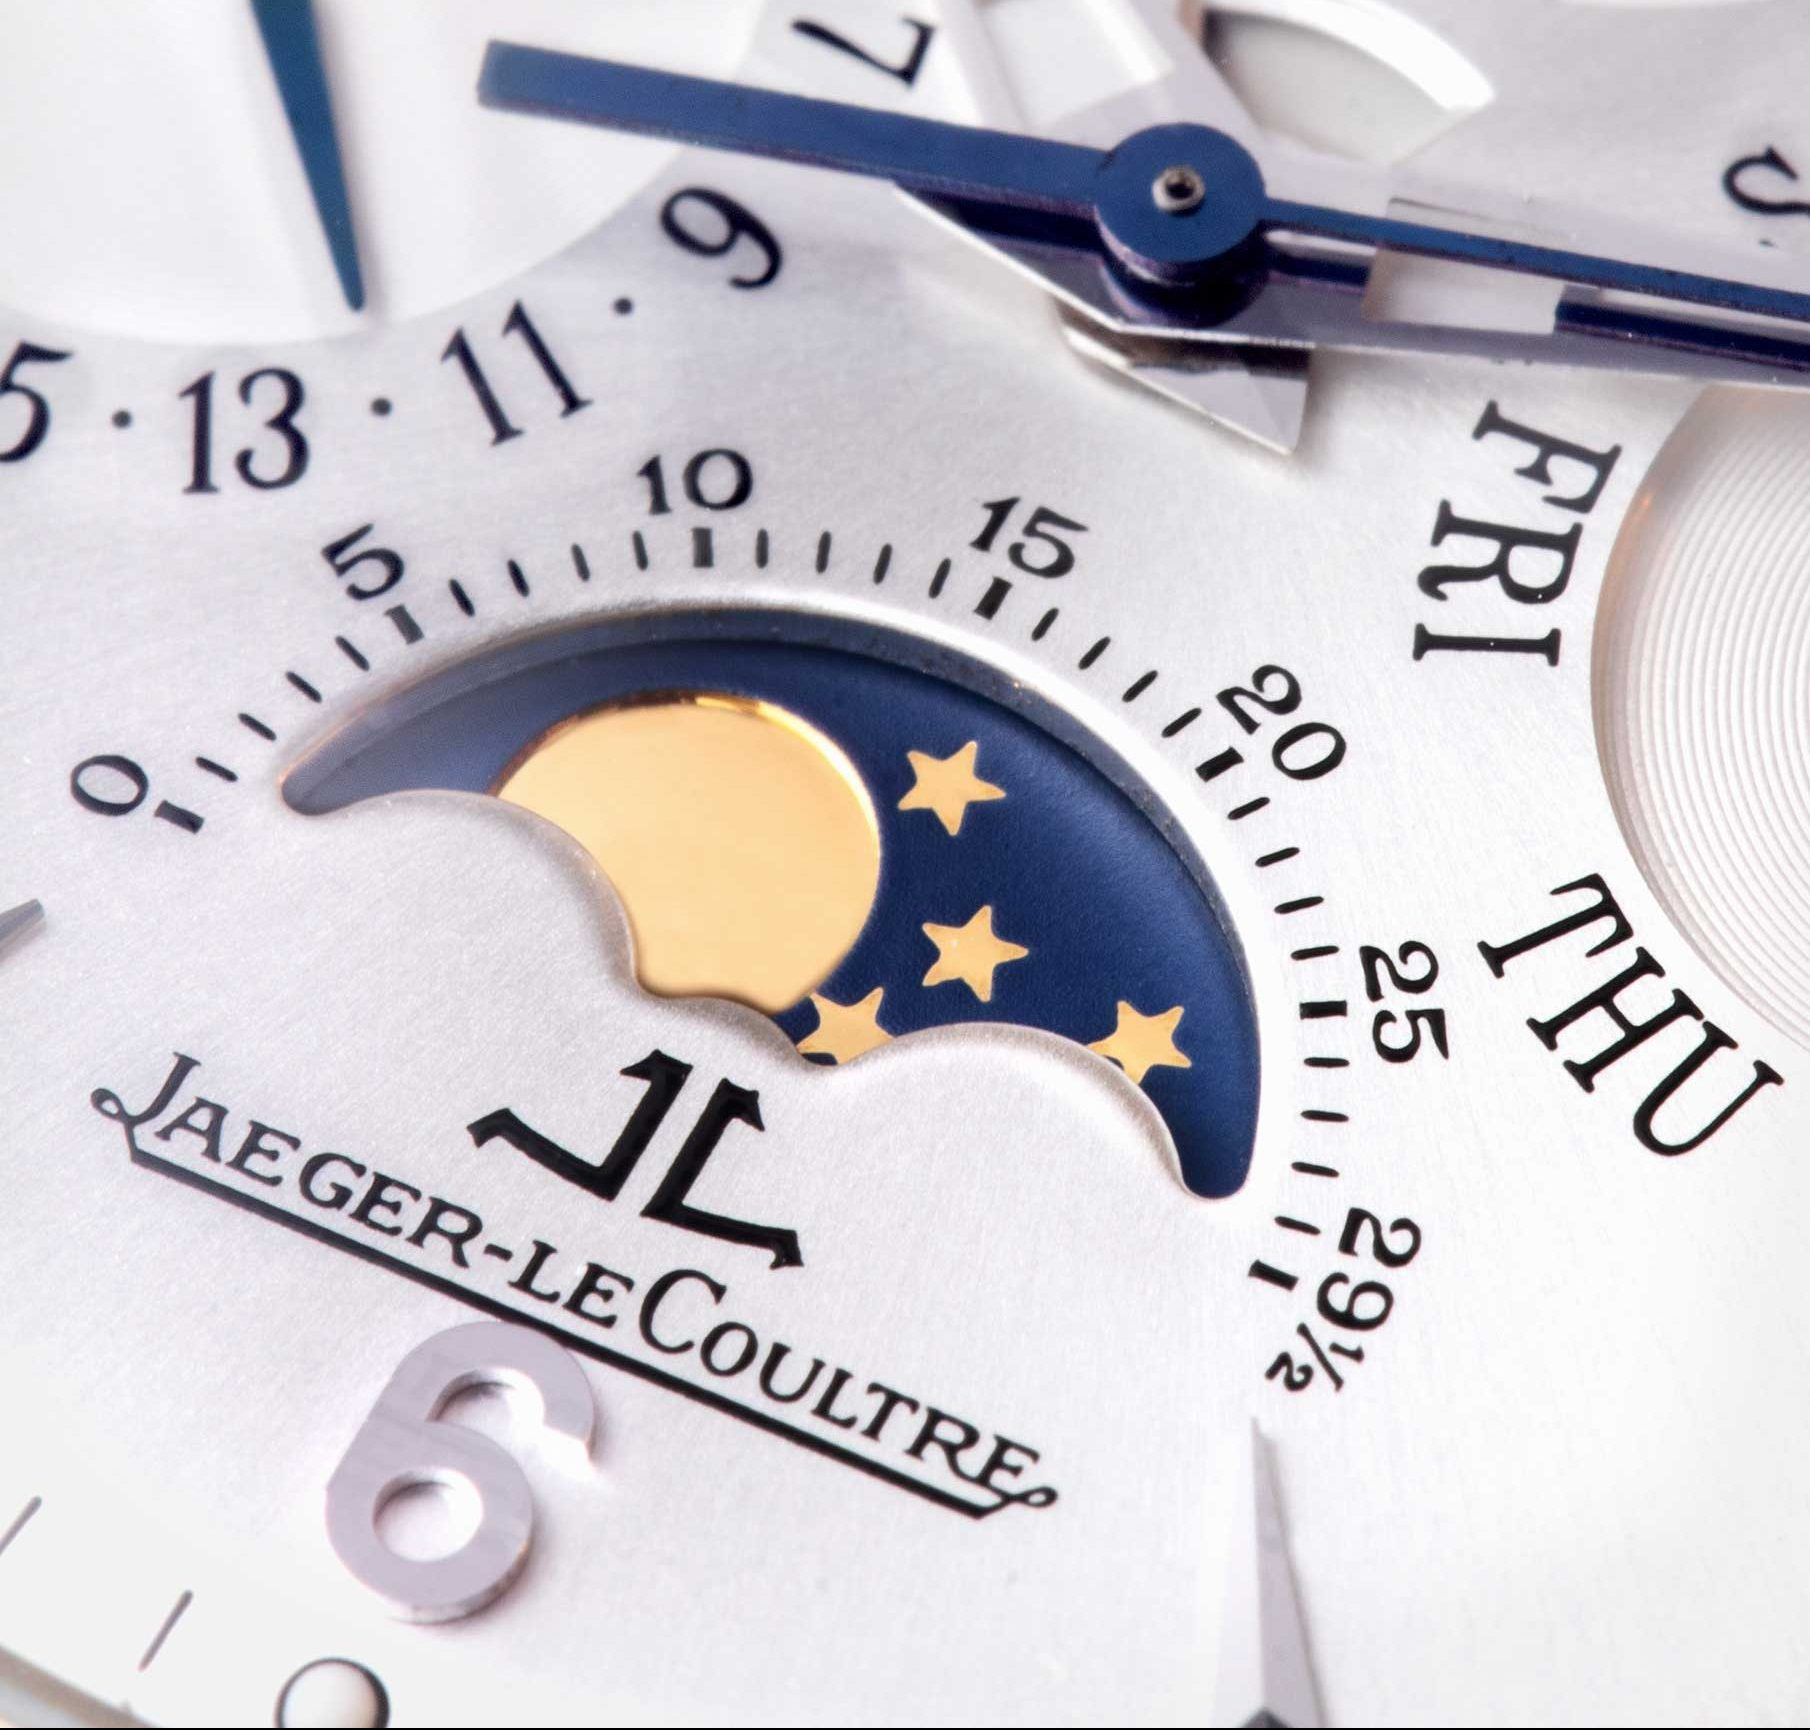 Le charme de la collection Reverso par Jaeger-LeCoultre